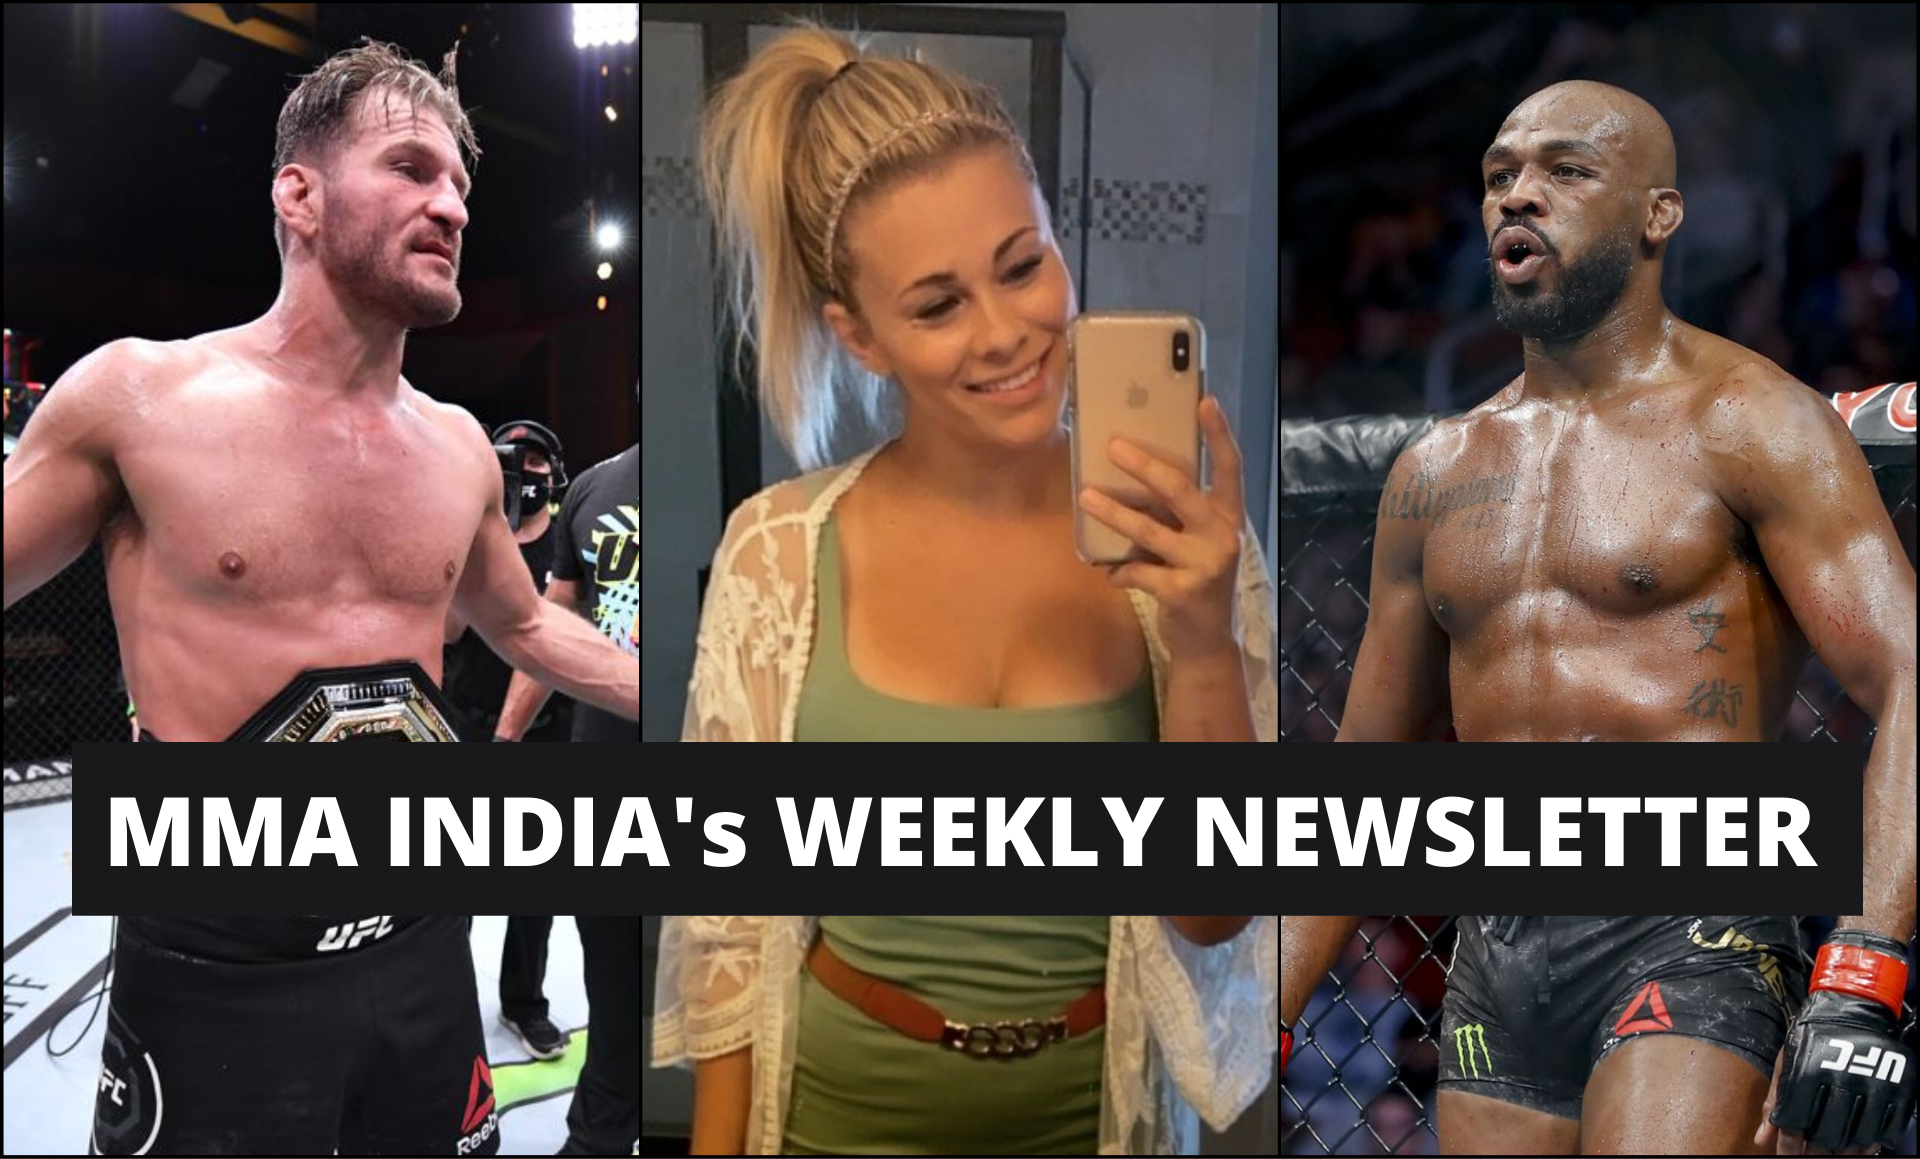 MMA India's Weekly Roundup (11-17 Aug): Miocic cements himself as the heavyweight GOAT, PVZ signs with BKFC and more - Miocic